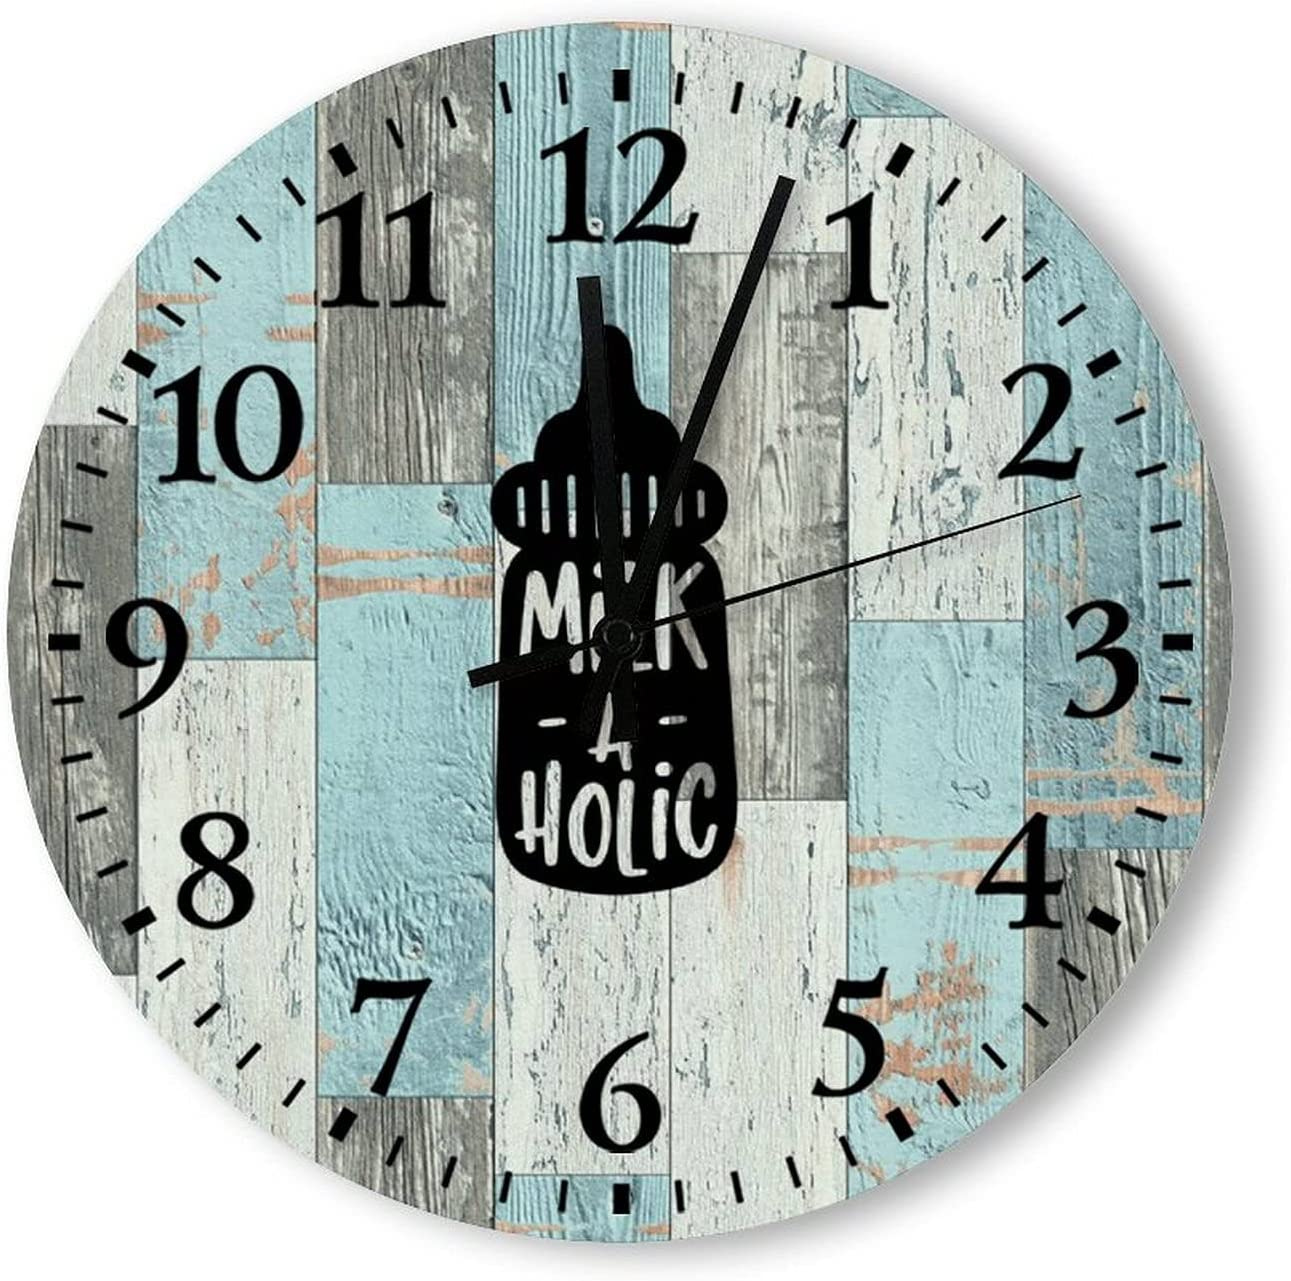 by Unbranded Hanging Wall Clock Babies Baby Milkaholic Newbo Beauty products Max 84% OFF